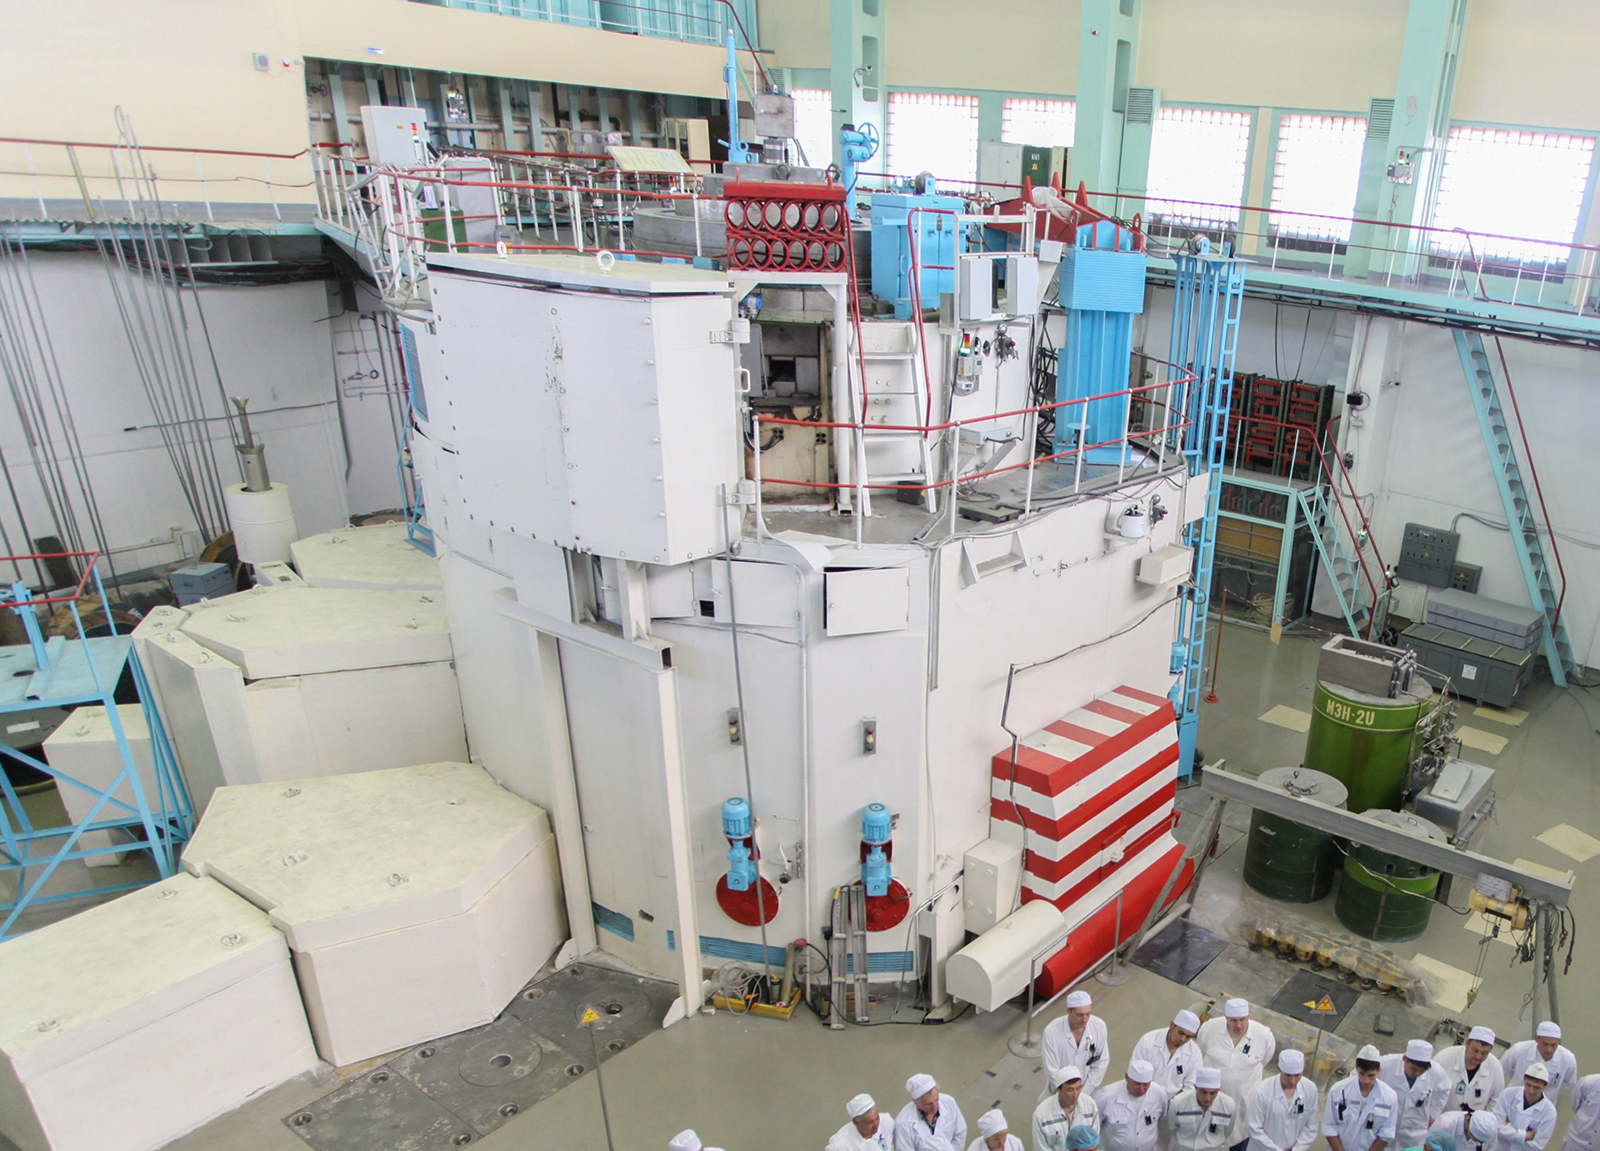 In Almaty, Kazakhstan, Argonne engineers worked with the Kazakh Institute of Nuclear Physics on a decade-long conversion of the VVR-K reactor.